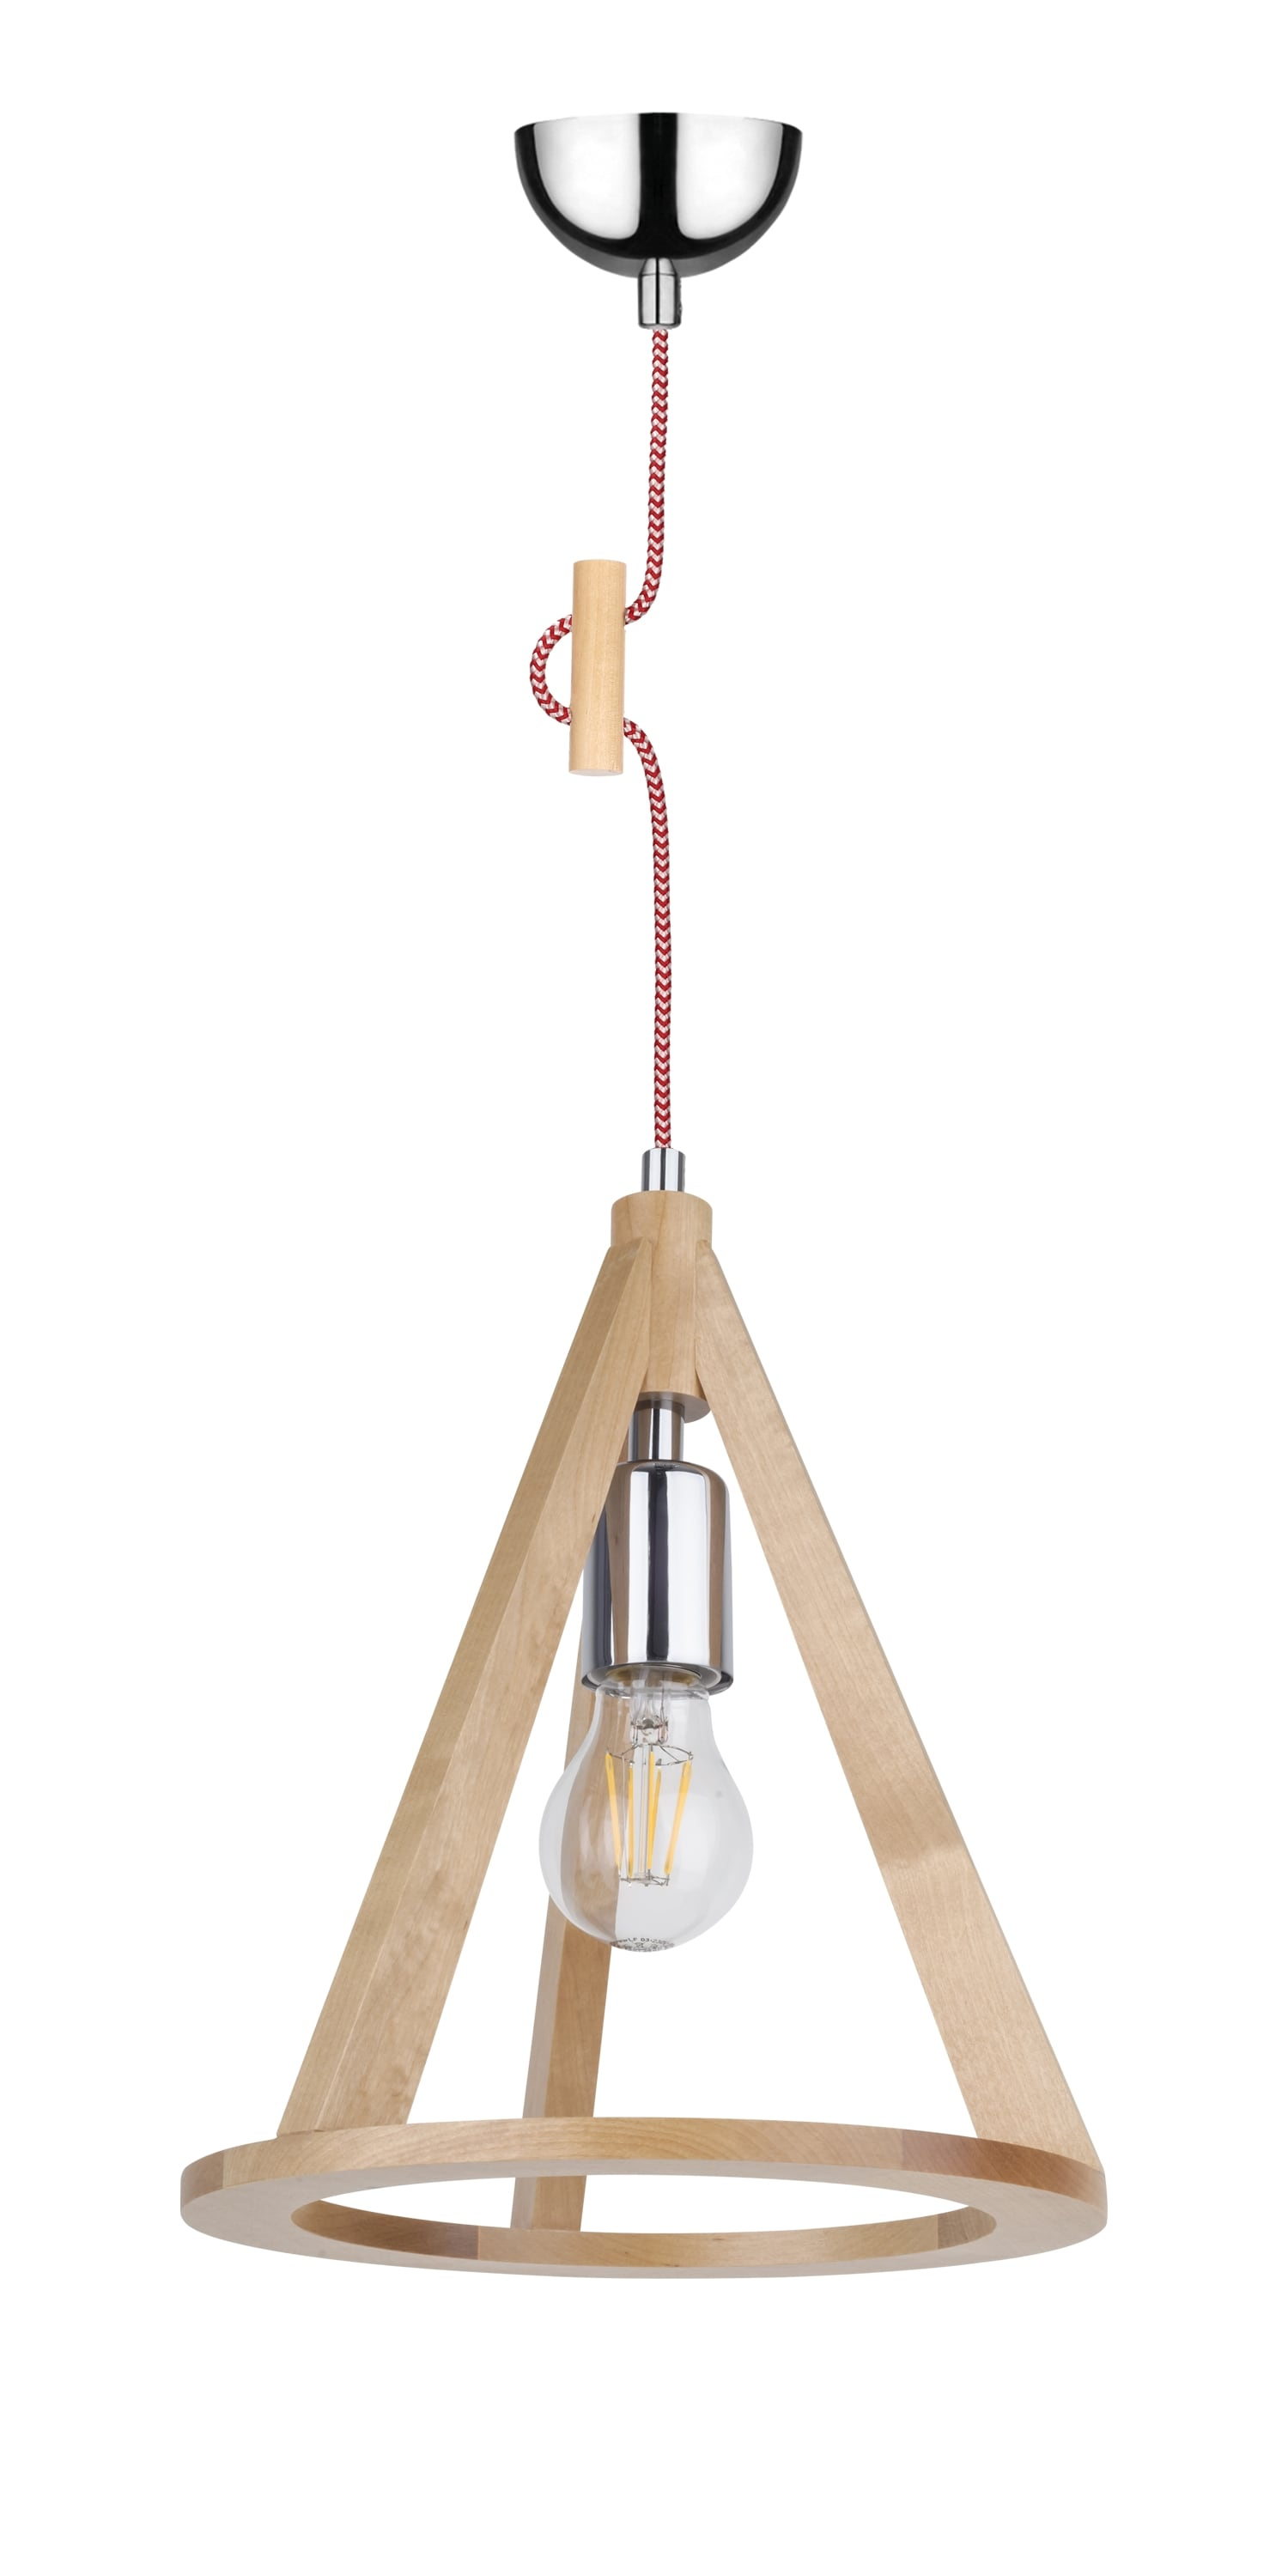 Lampa wisząca brzoza / chrom / red and white E27 60W